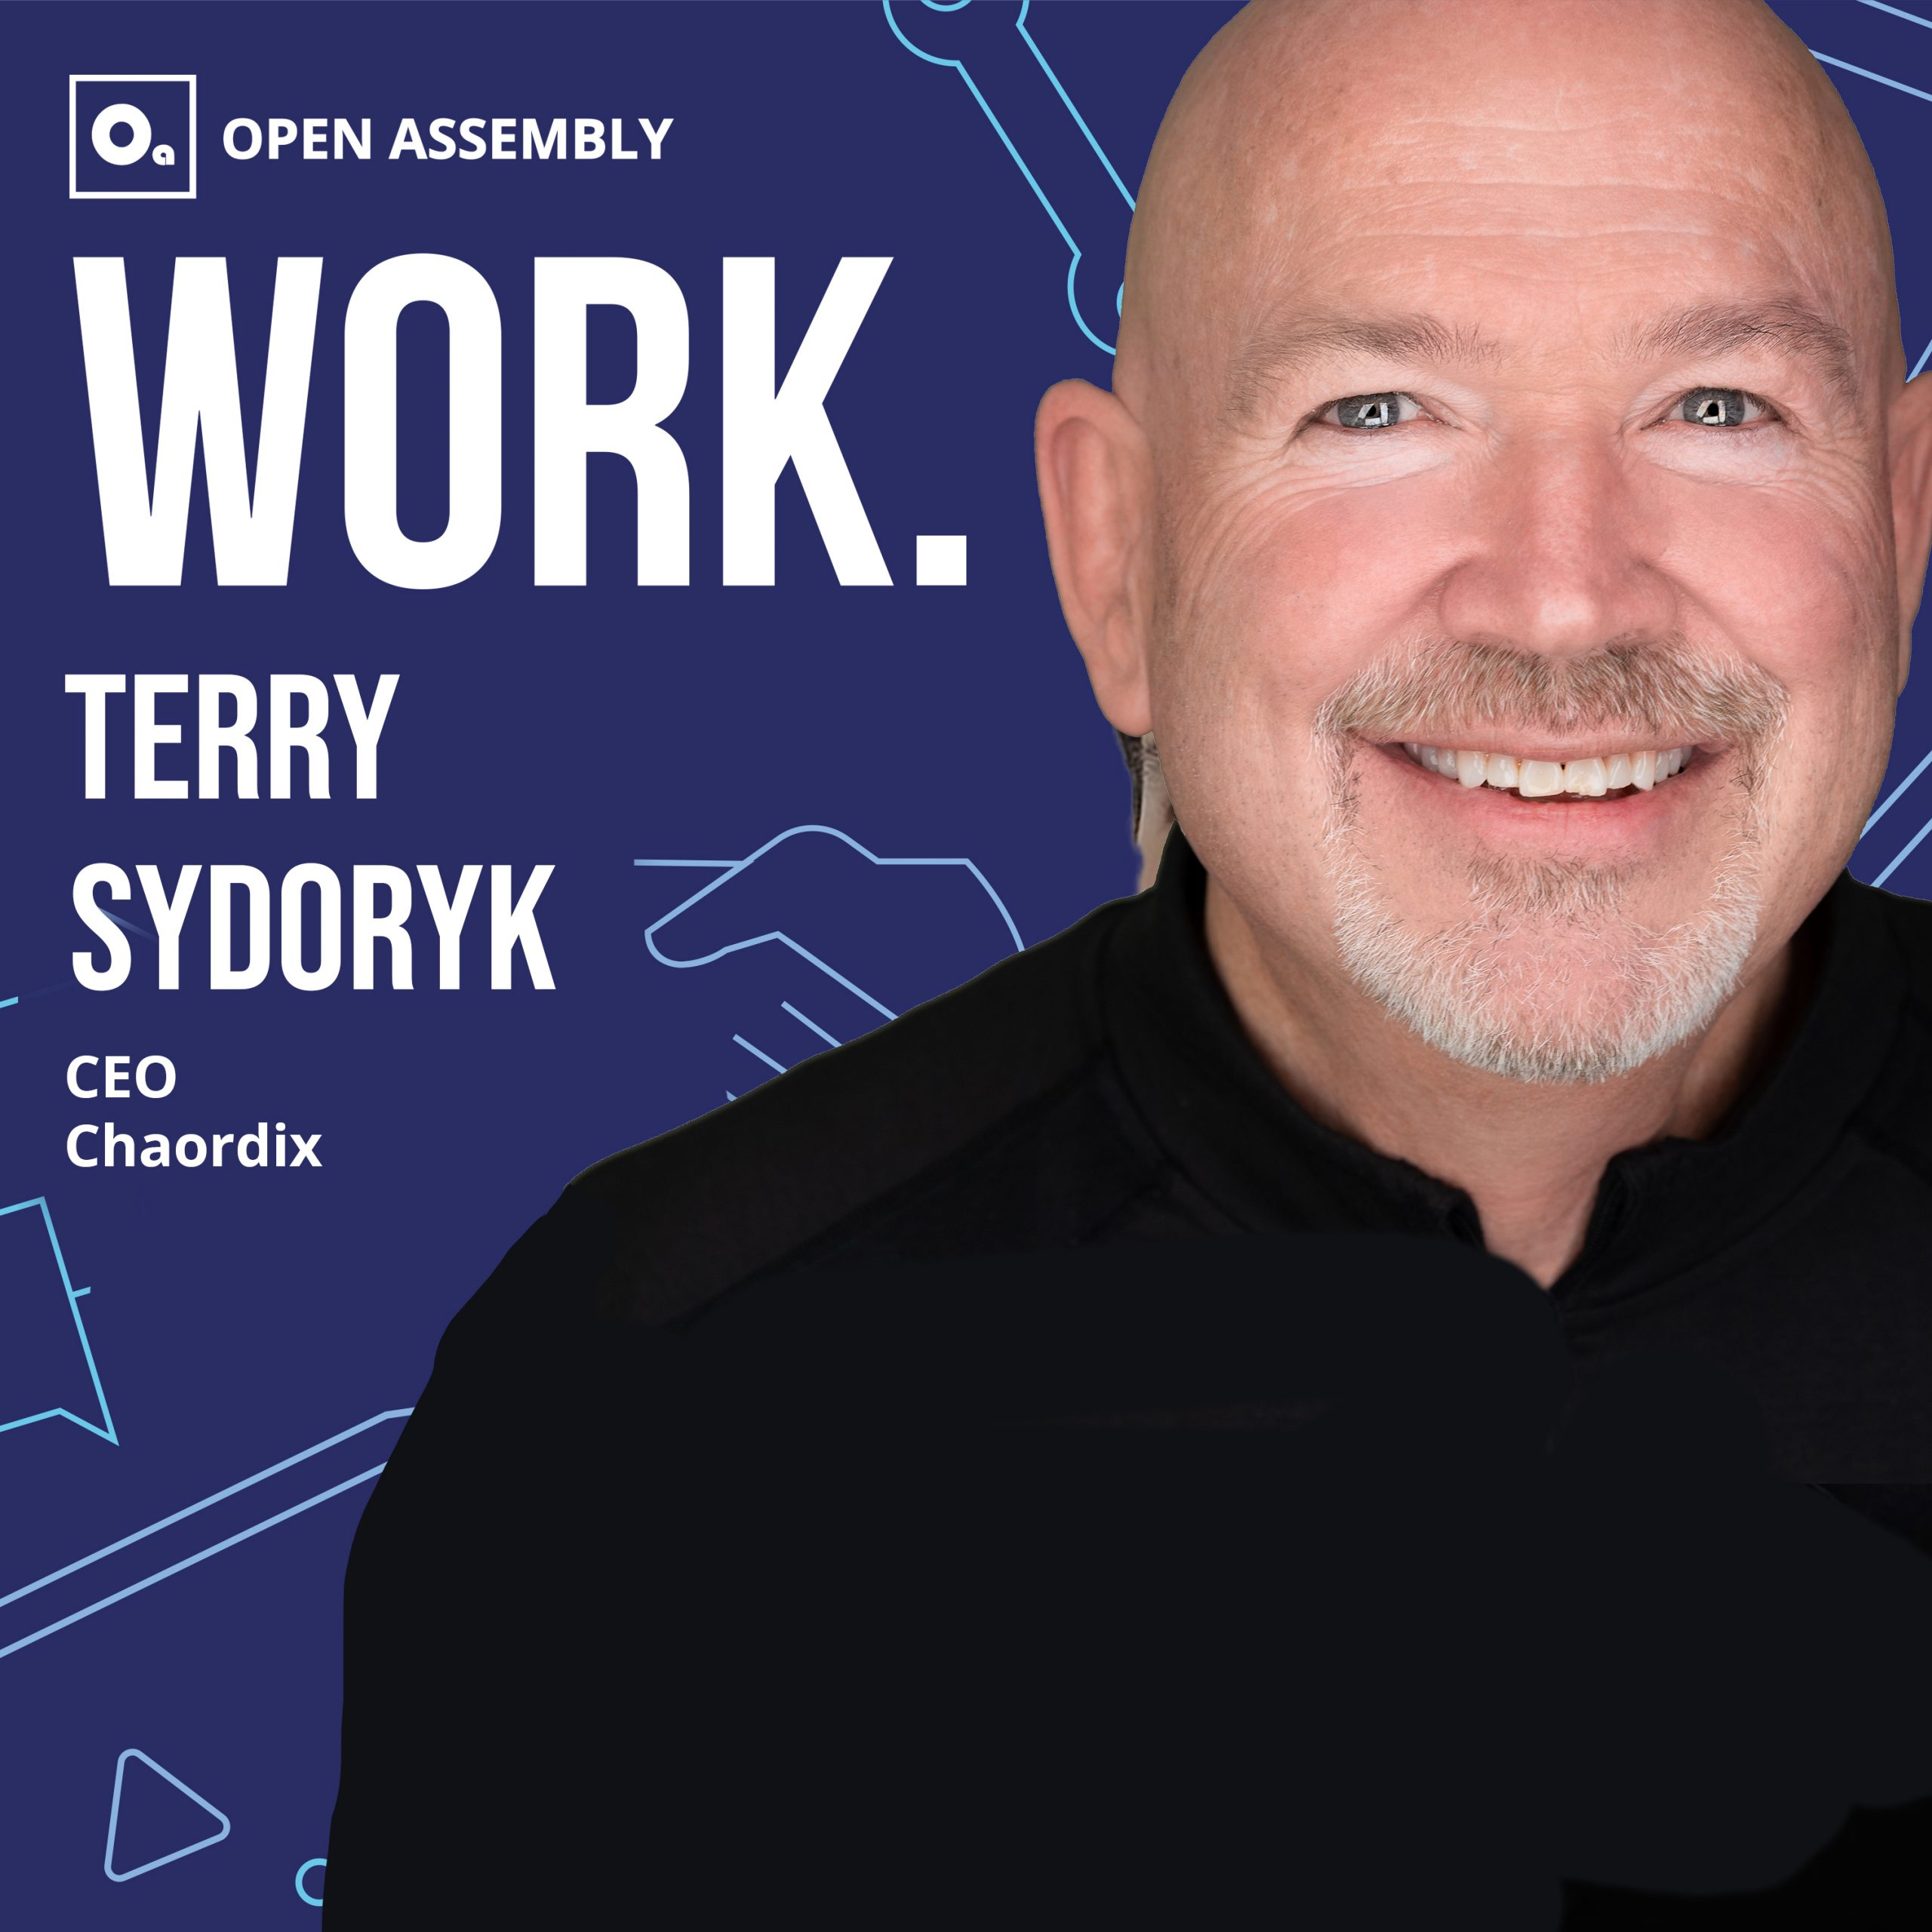 Terry Sydoryk